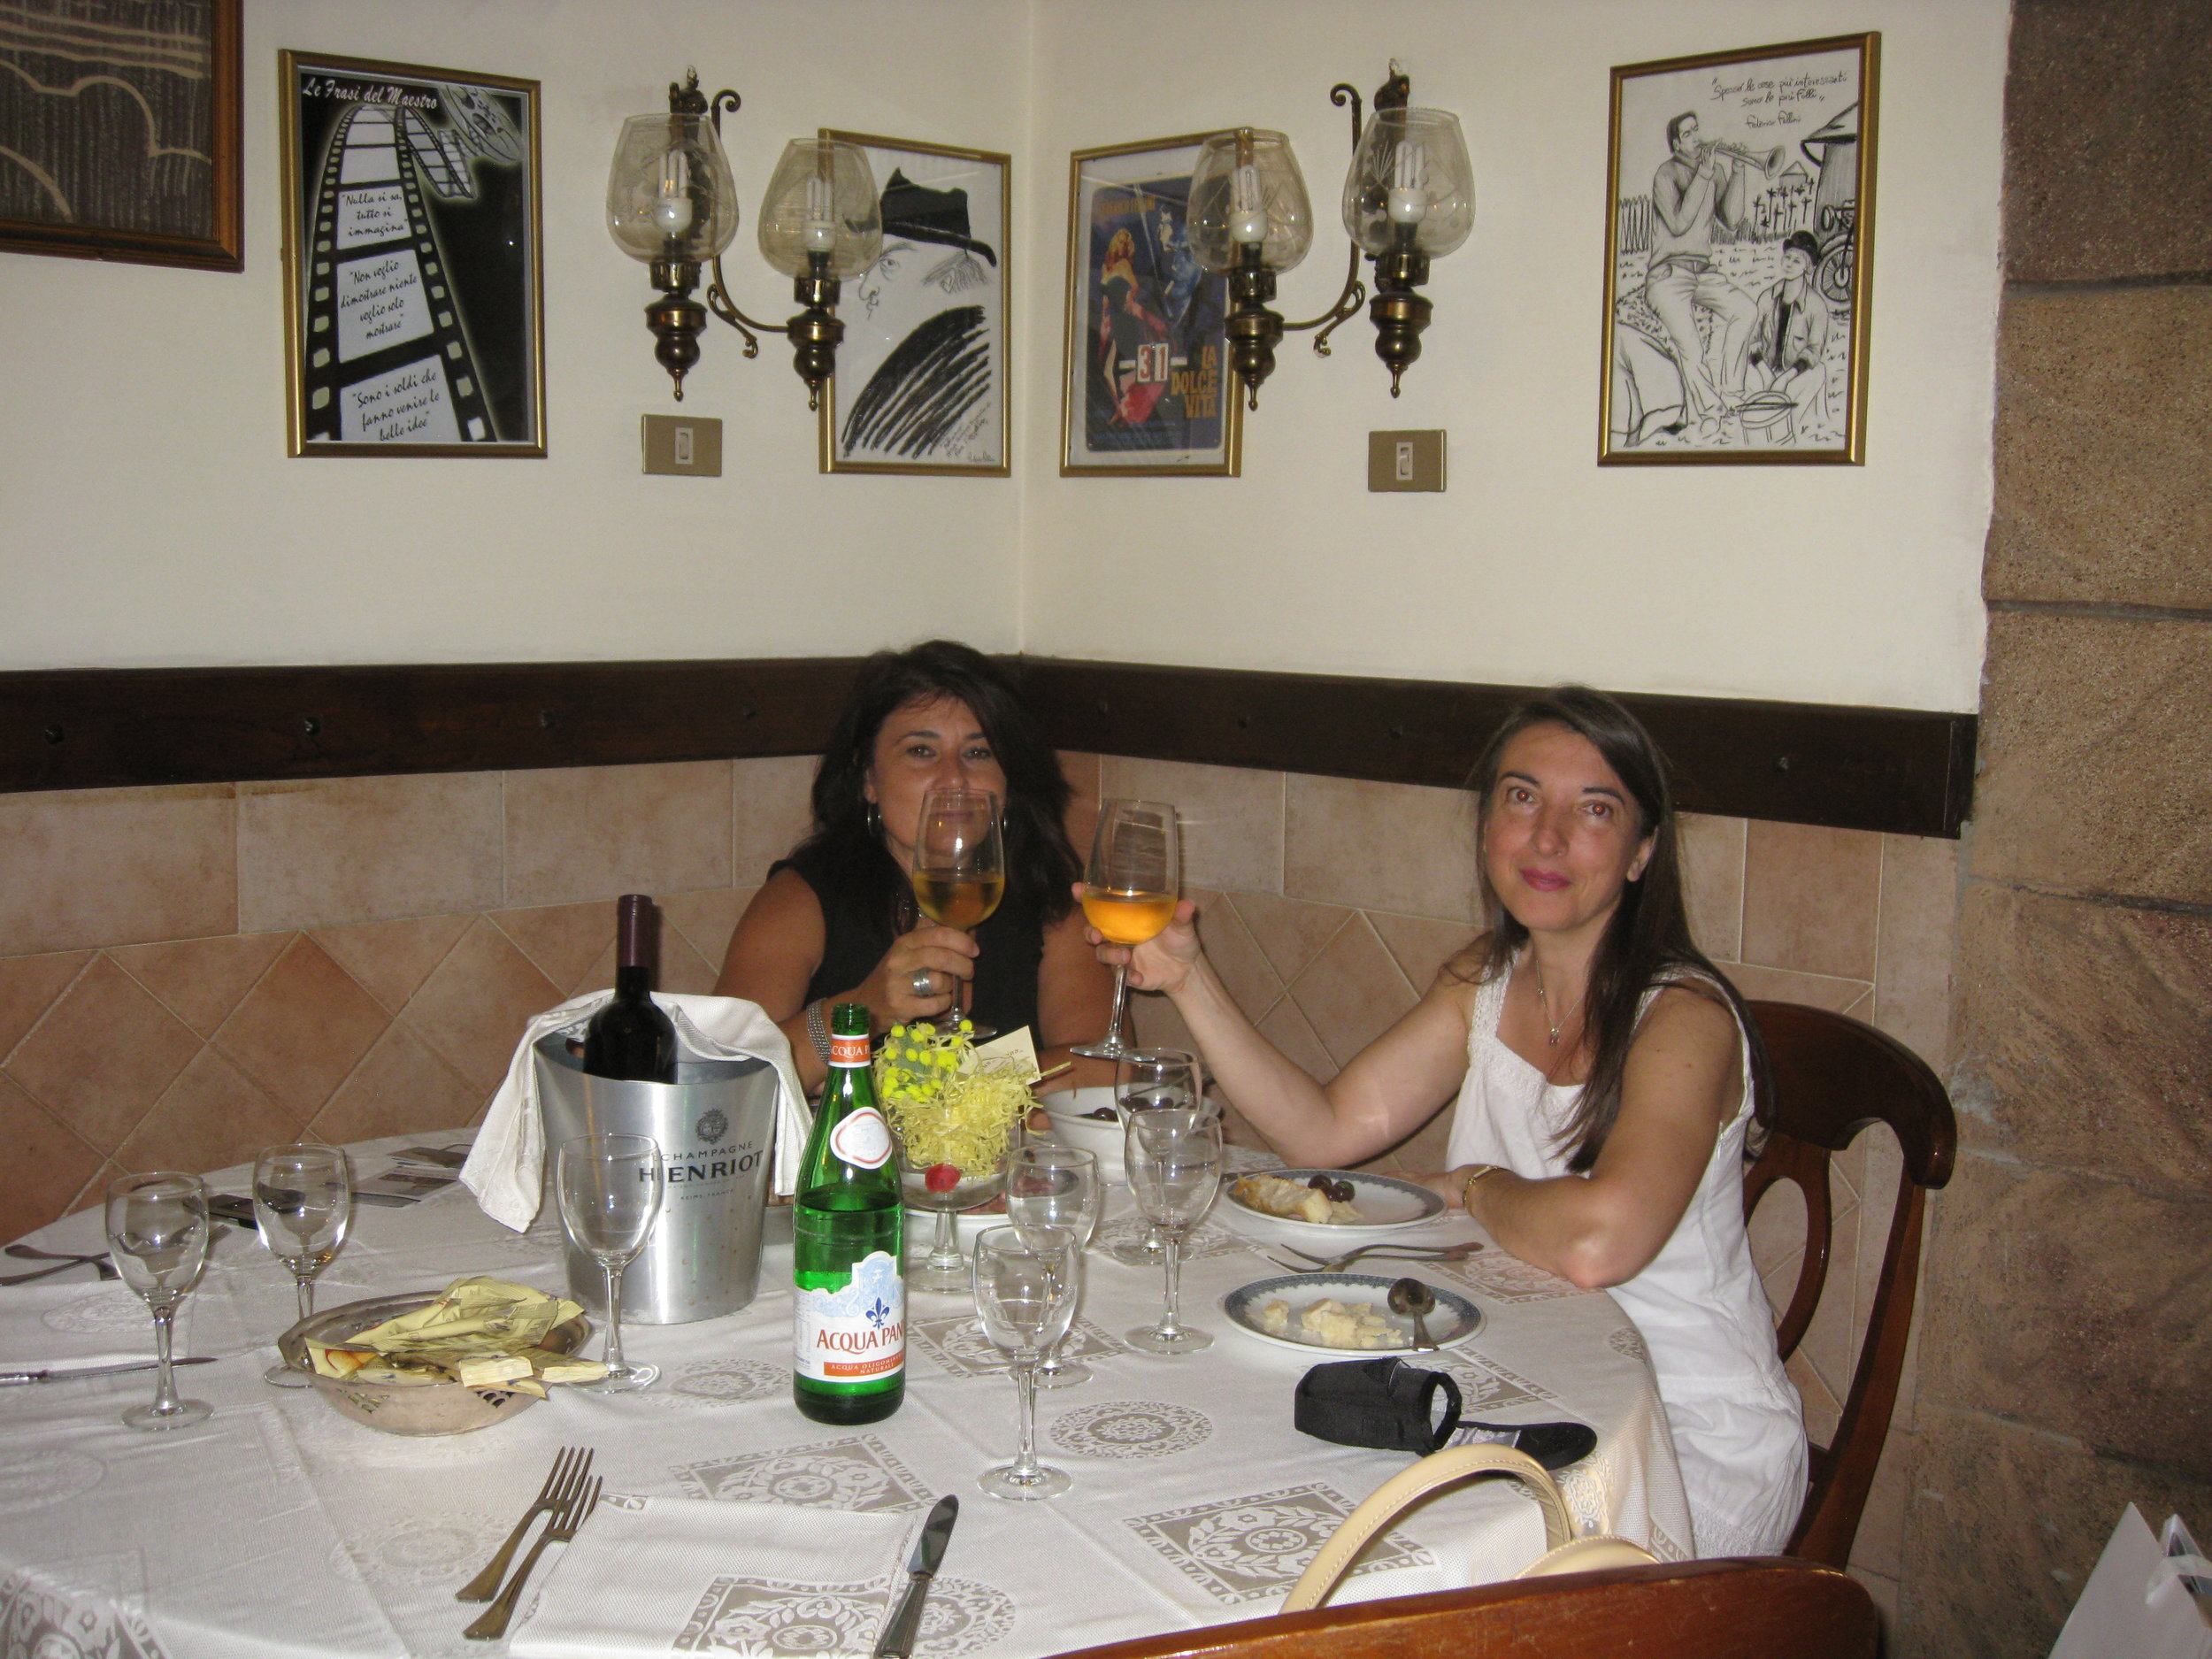 STEFANIA WITH THE OWNER OF THE RESTAURANT IN ROME AT FEDERICO FELLINI'S TABLE WHERE THE FILM MAKER USED TO HAVE DINNER FREQUENTLY WITH HIS FRIENDS SOPHIA LOREN AND MARCELLO MASTROIANNI.